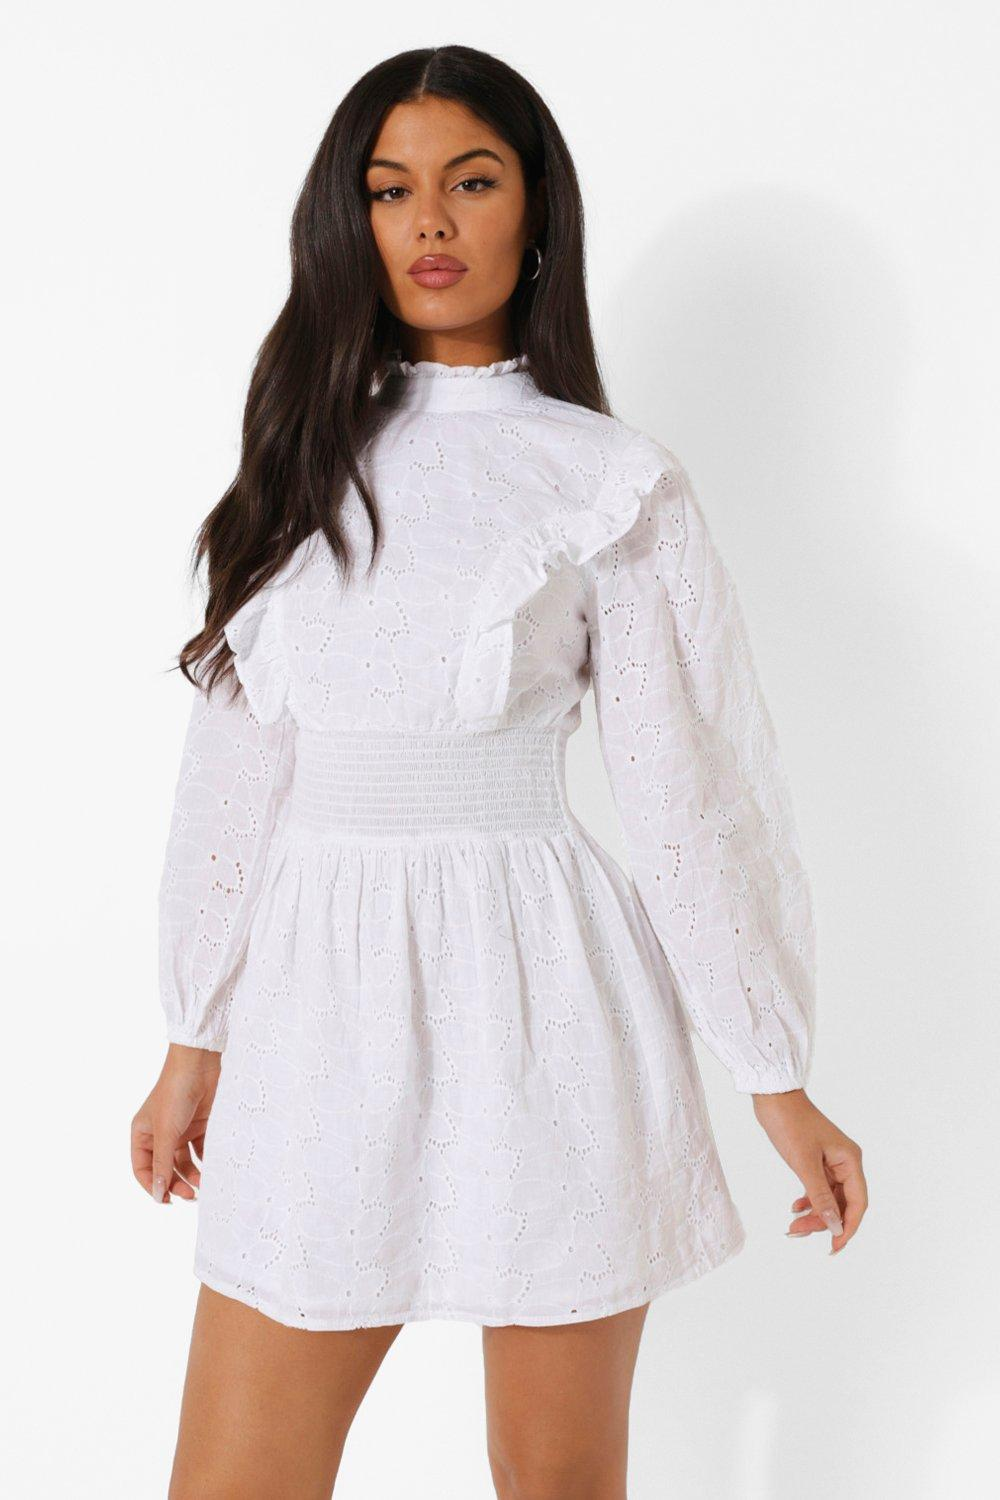 70s Clothes | Hippie Clothes & Outfits Womens Puff Sleeve High Neck Broderie Skater Dress - White - 14 $20.00 AT vintagedancer.com